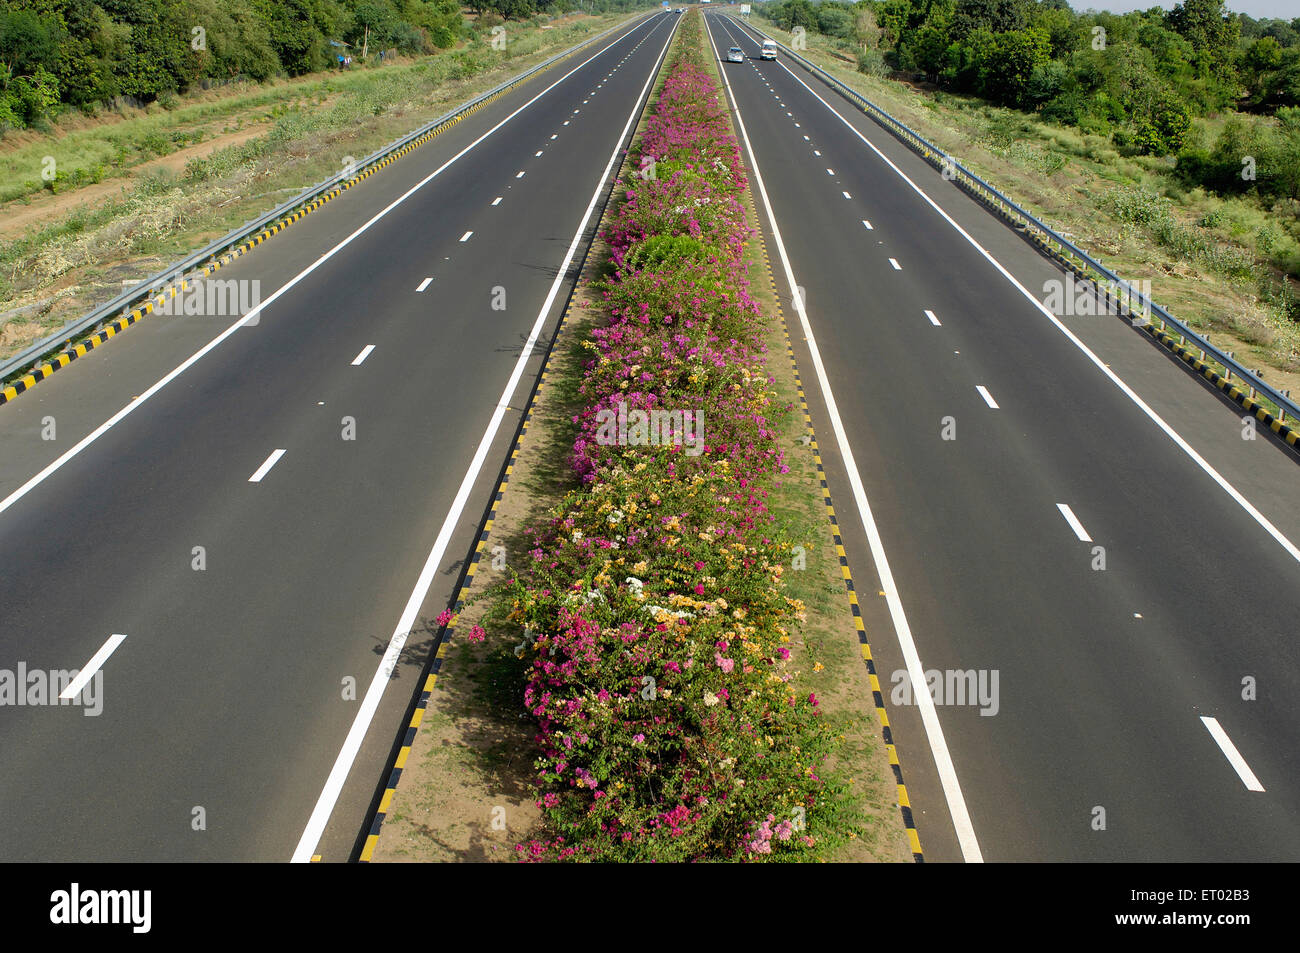 Ahmedabad Vadodara Expressway with flowers bed National Highways Authority of India Gujarat India Stock Photo